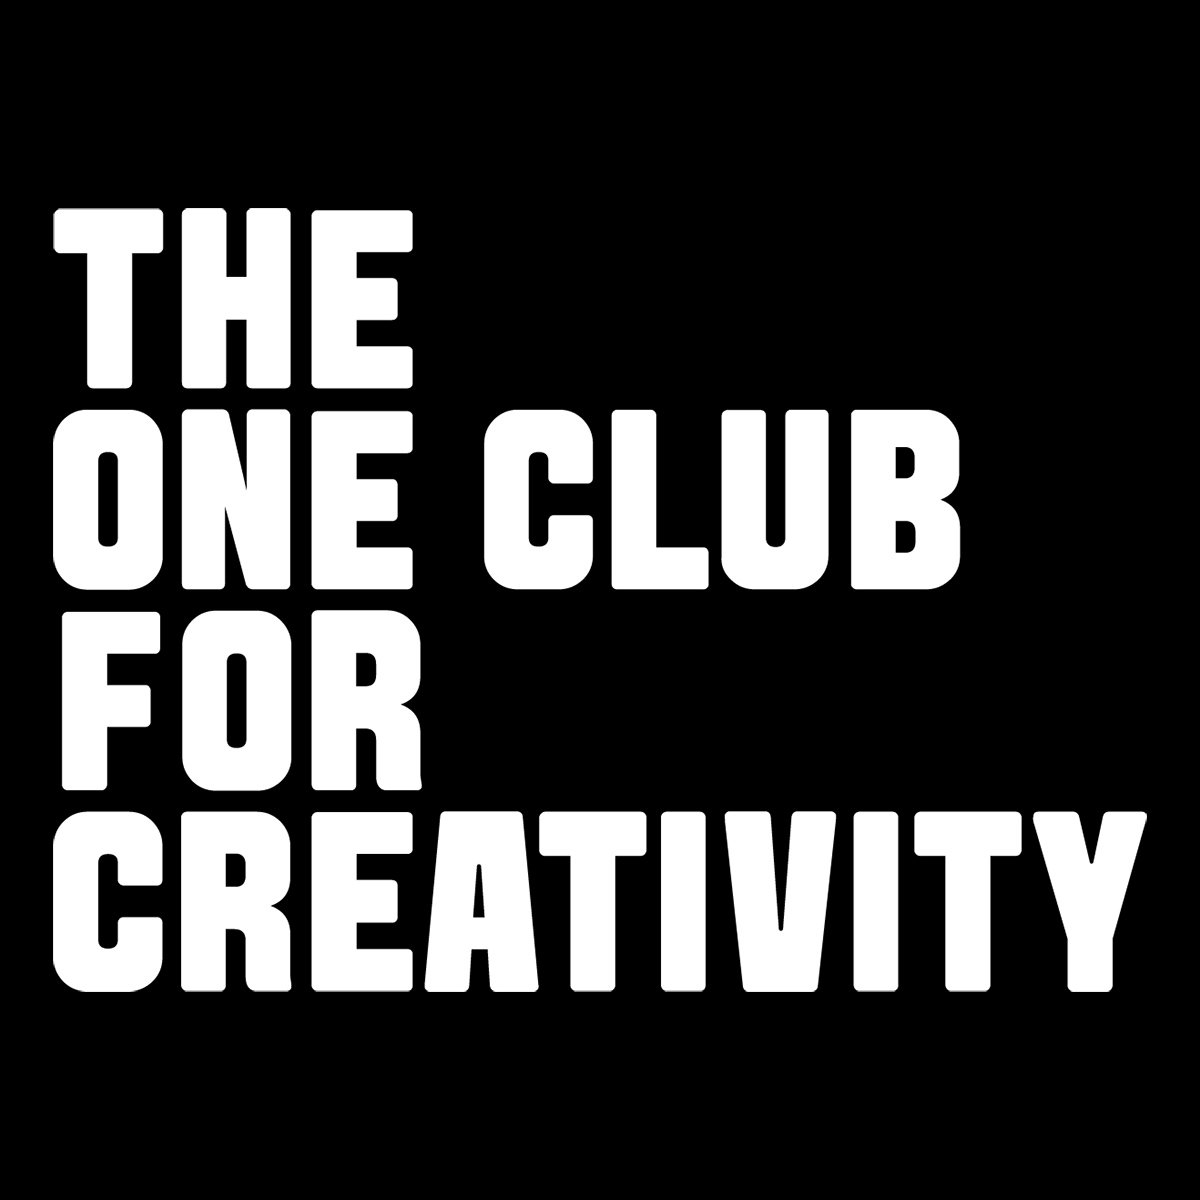 The One Club for Creativity Announces 2019 Global Portfolio Night